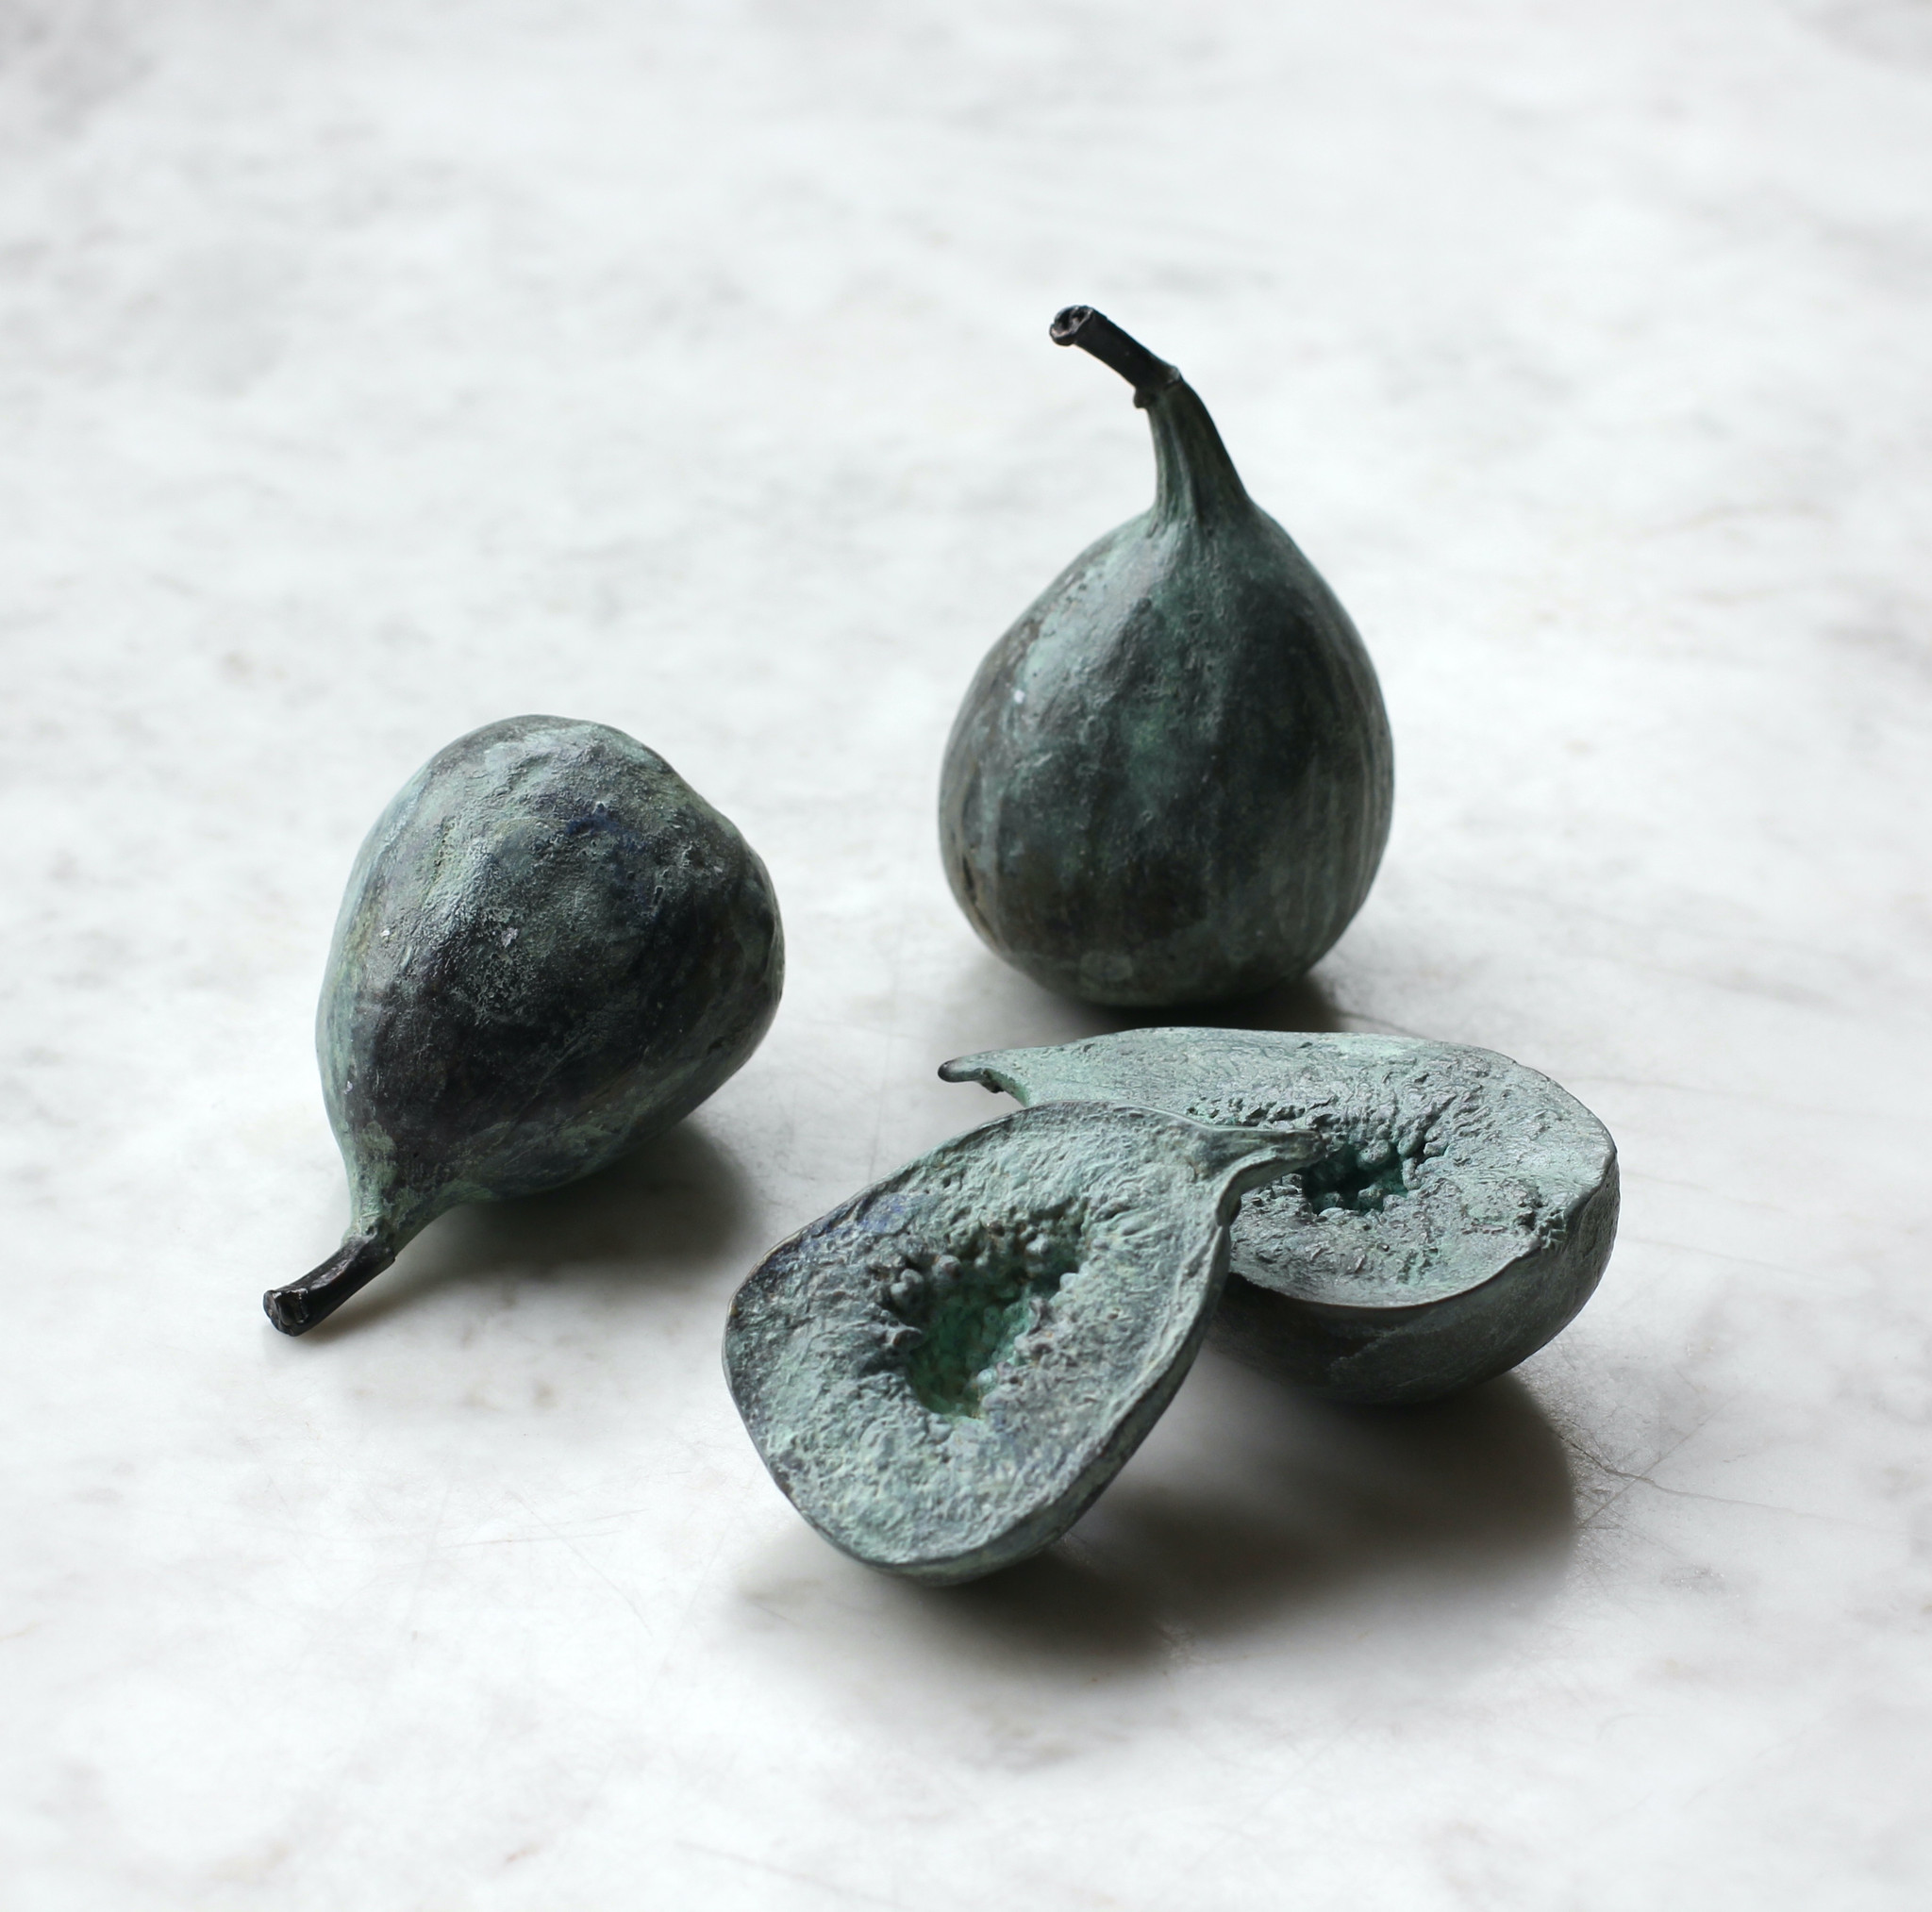 Pomarius collection, bronze, fig, lost wax, object, curiosity, botanical